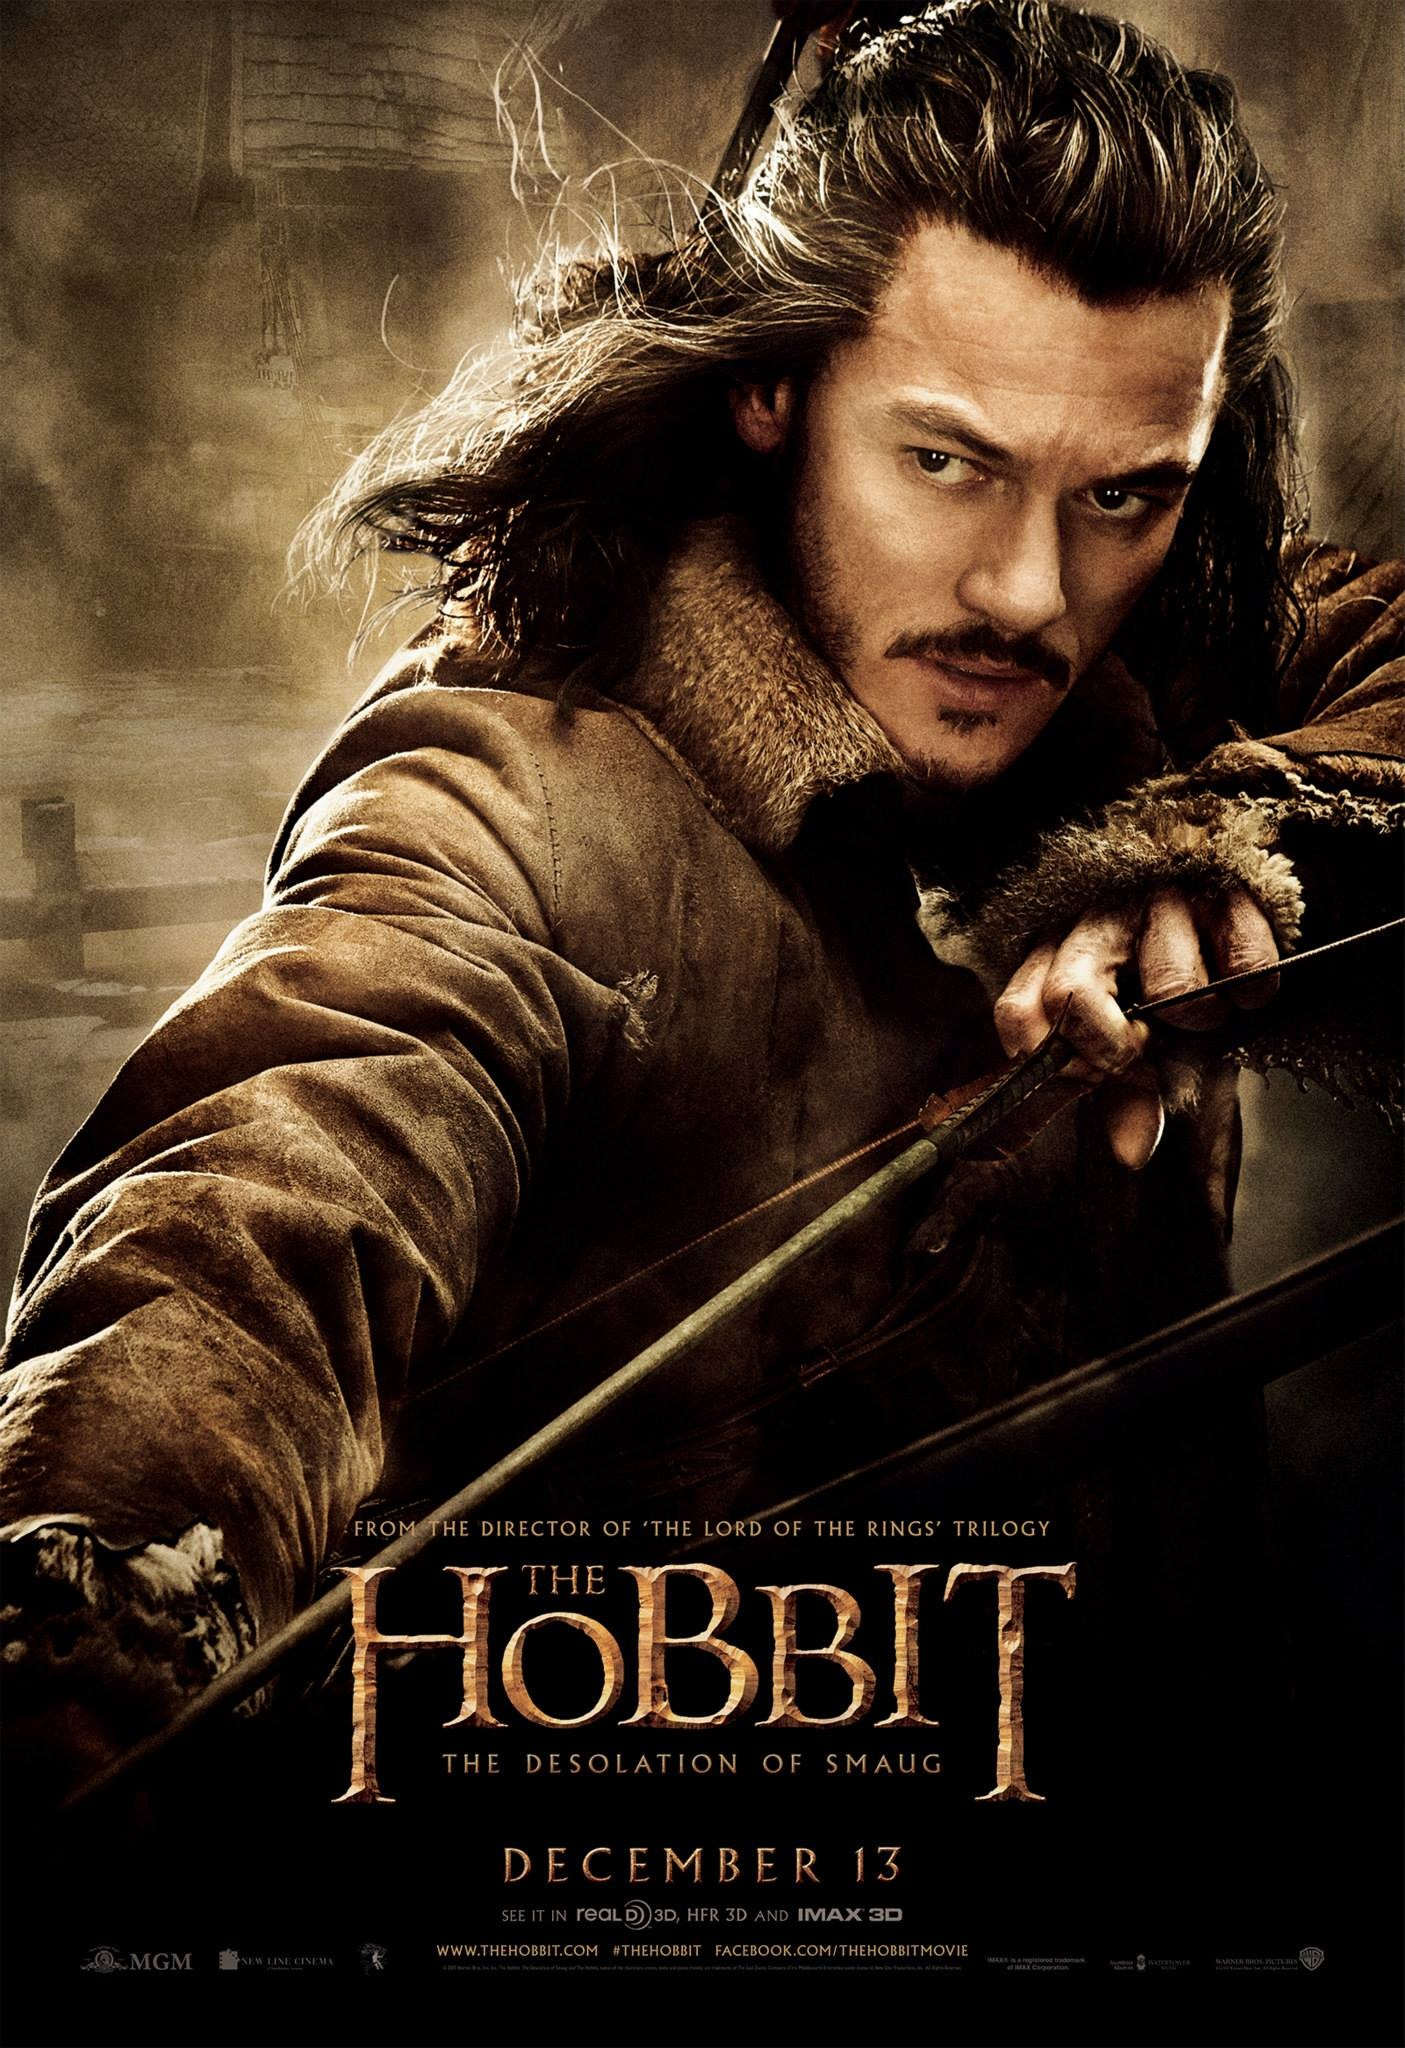 The Hobbit The Desolation of Smaug-Official Poster Banner PROMO POSTER XXLG-04NOVEMBRO2013-02